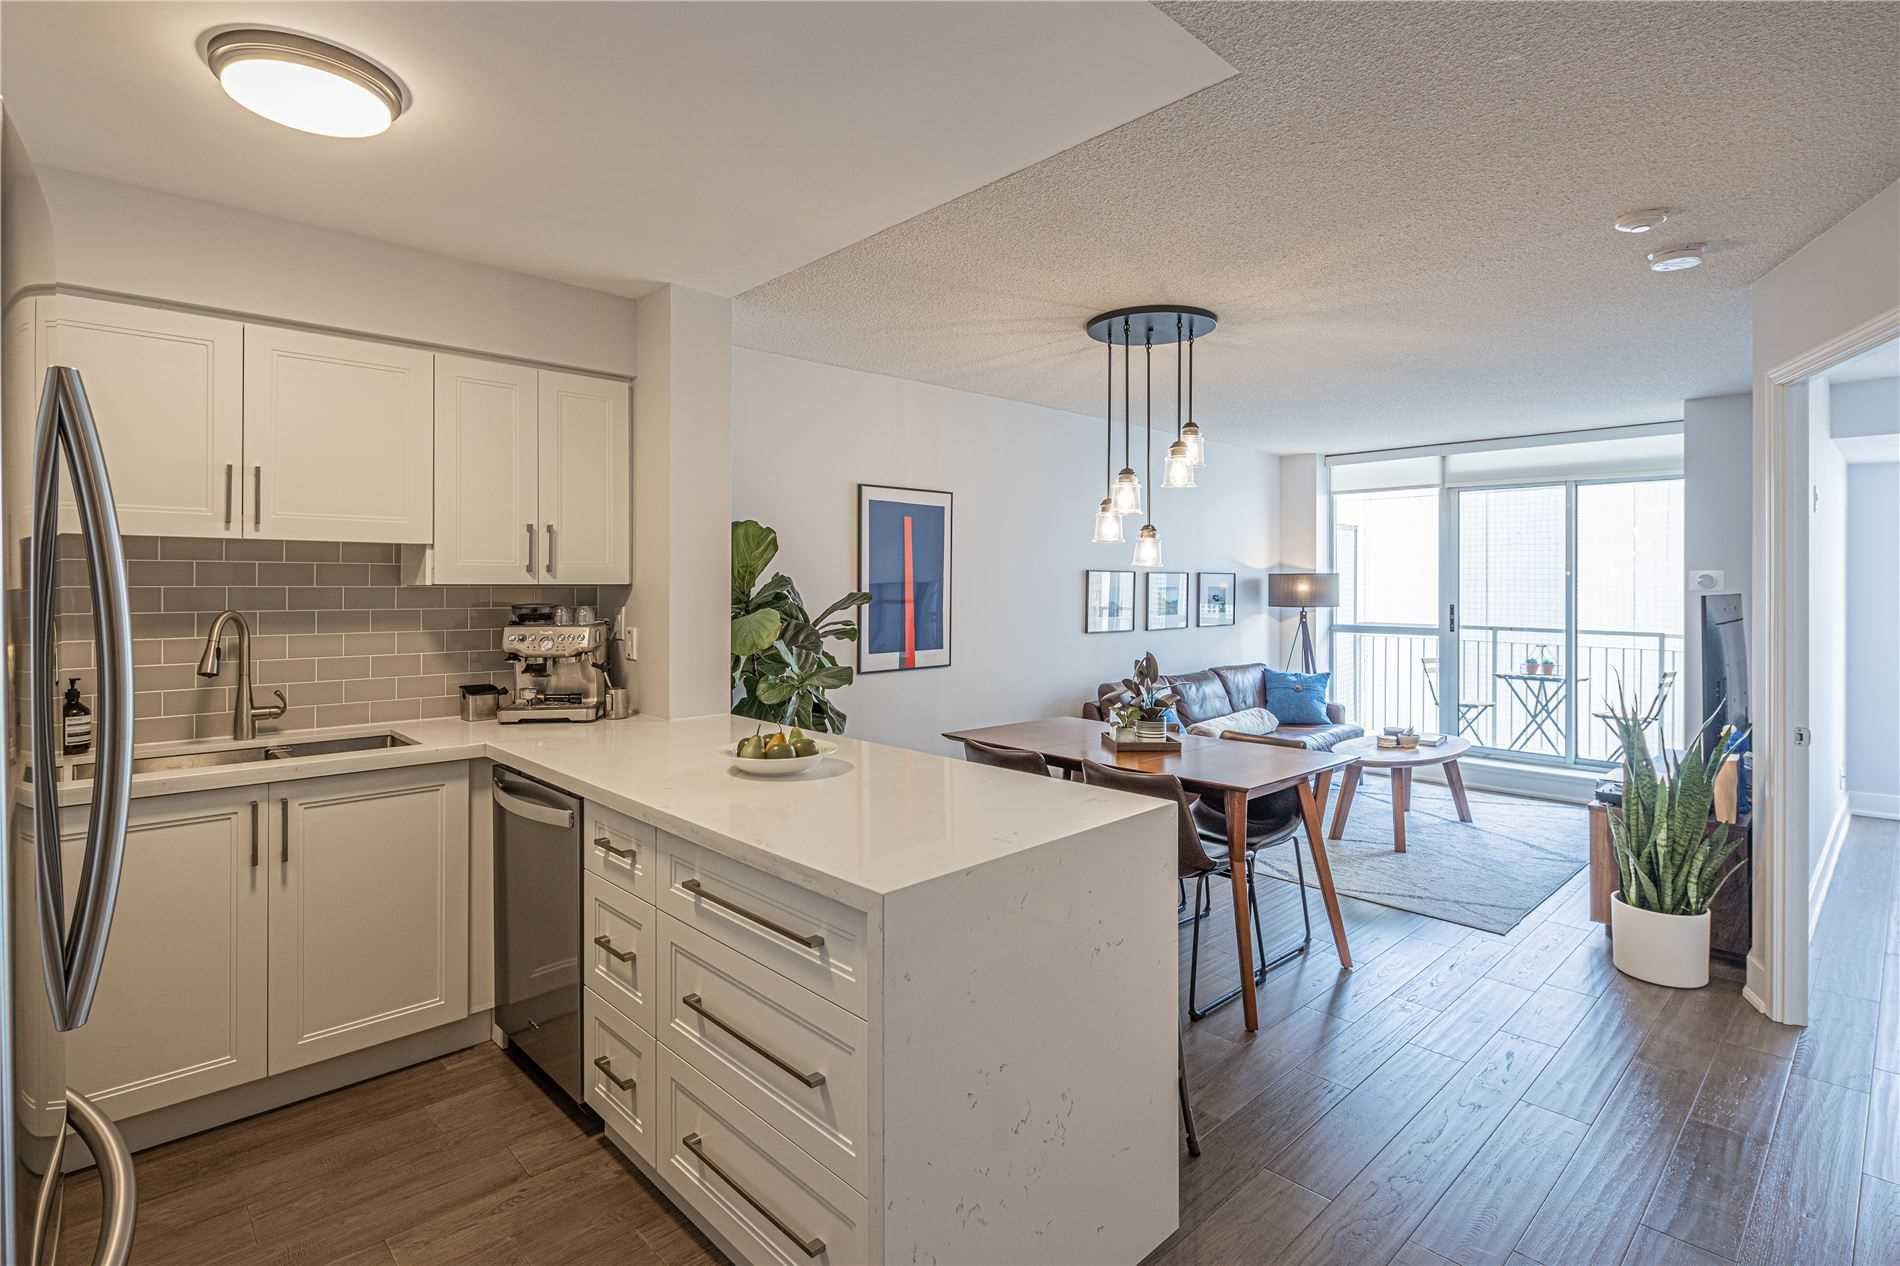 18 Stafford St, unit 909 for sale in Toronto - image #2